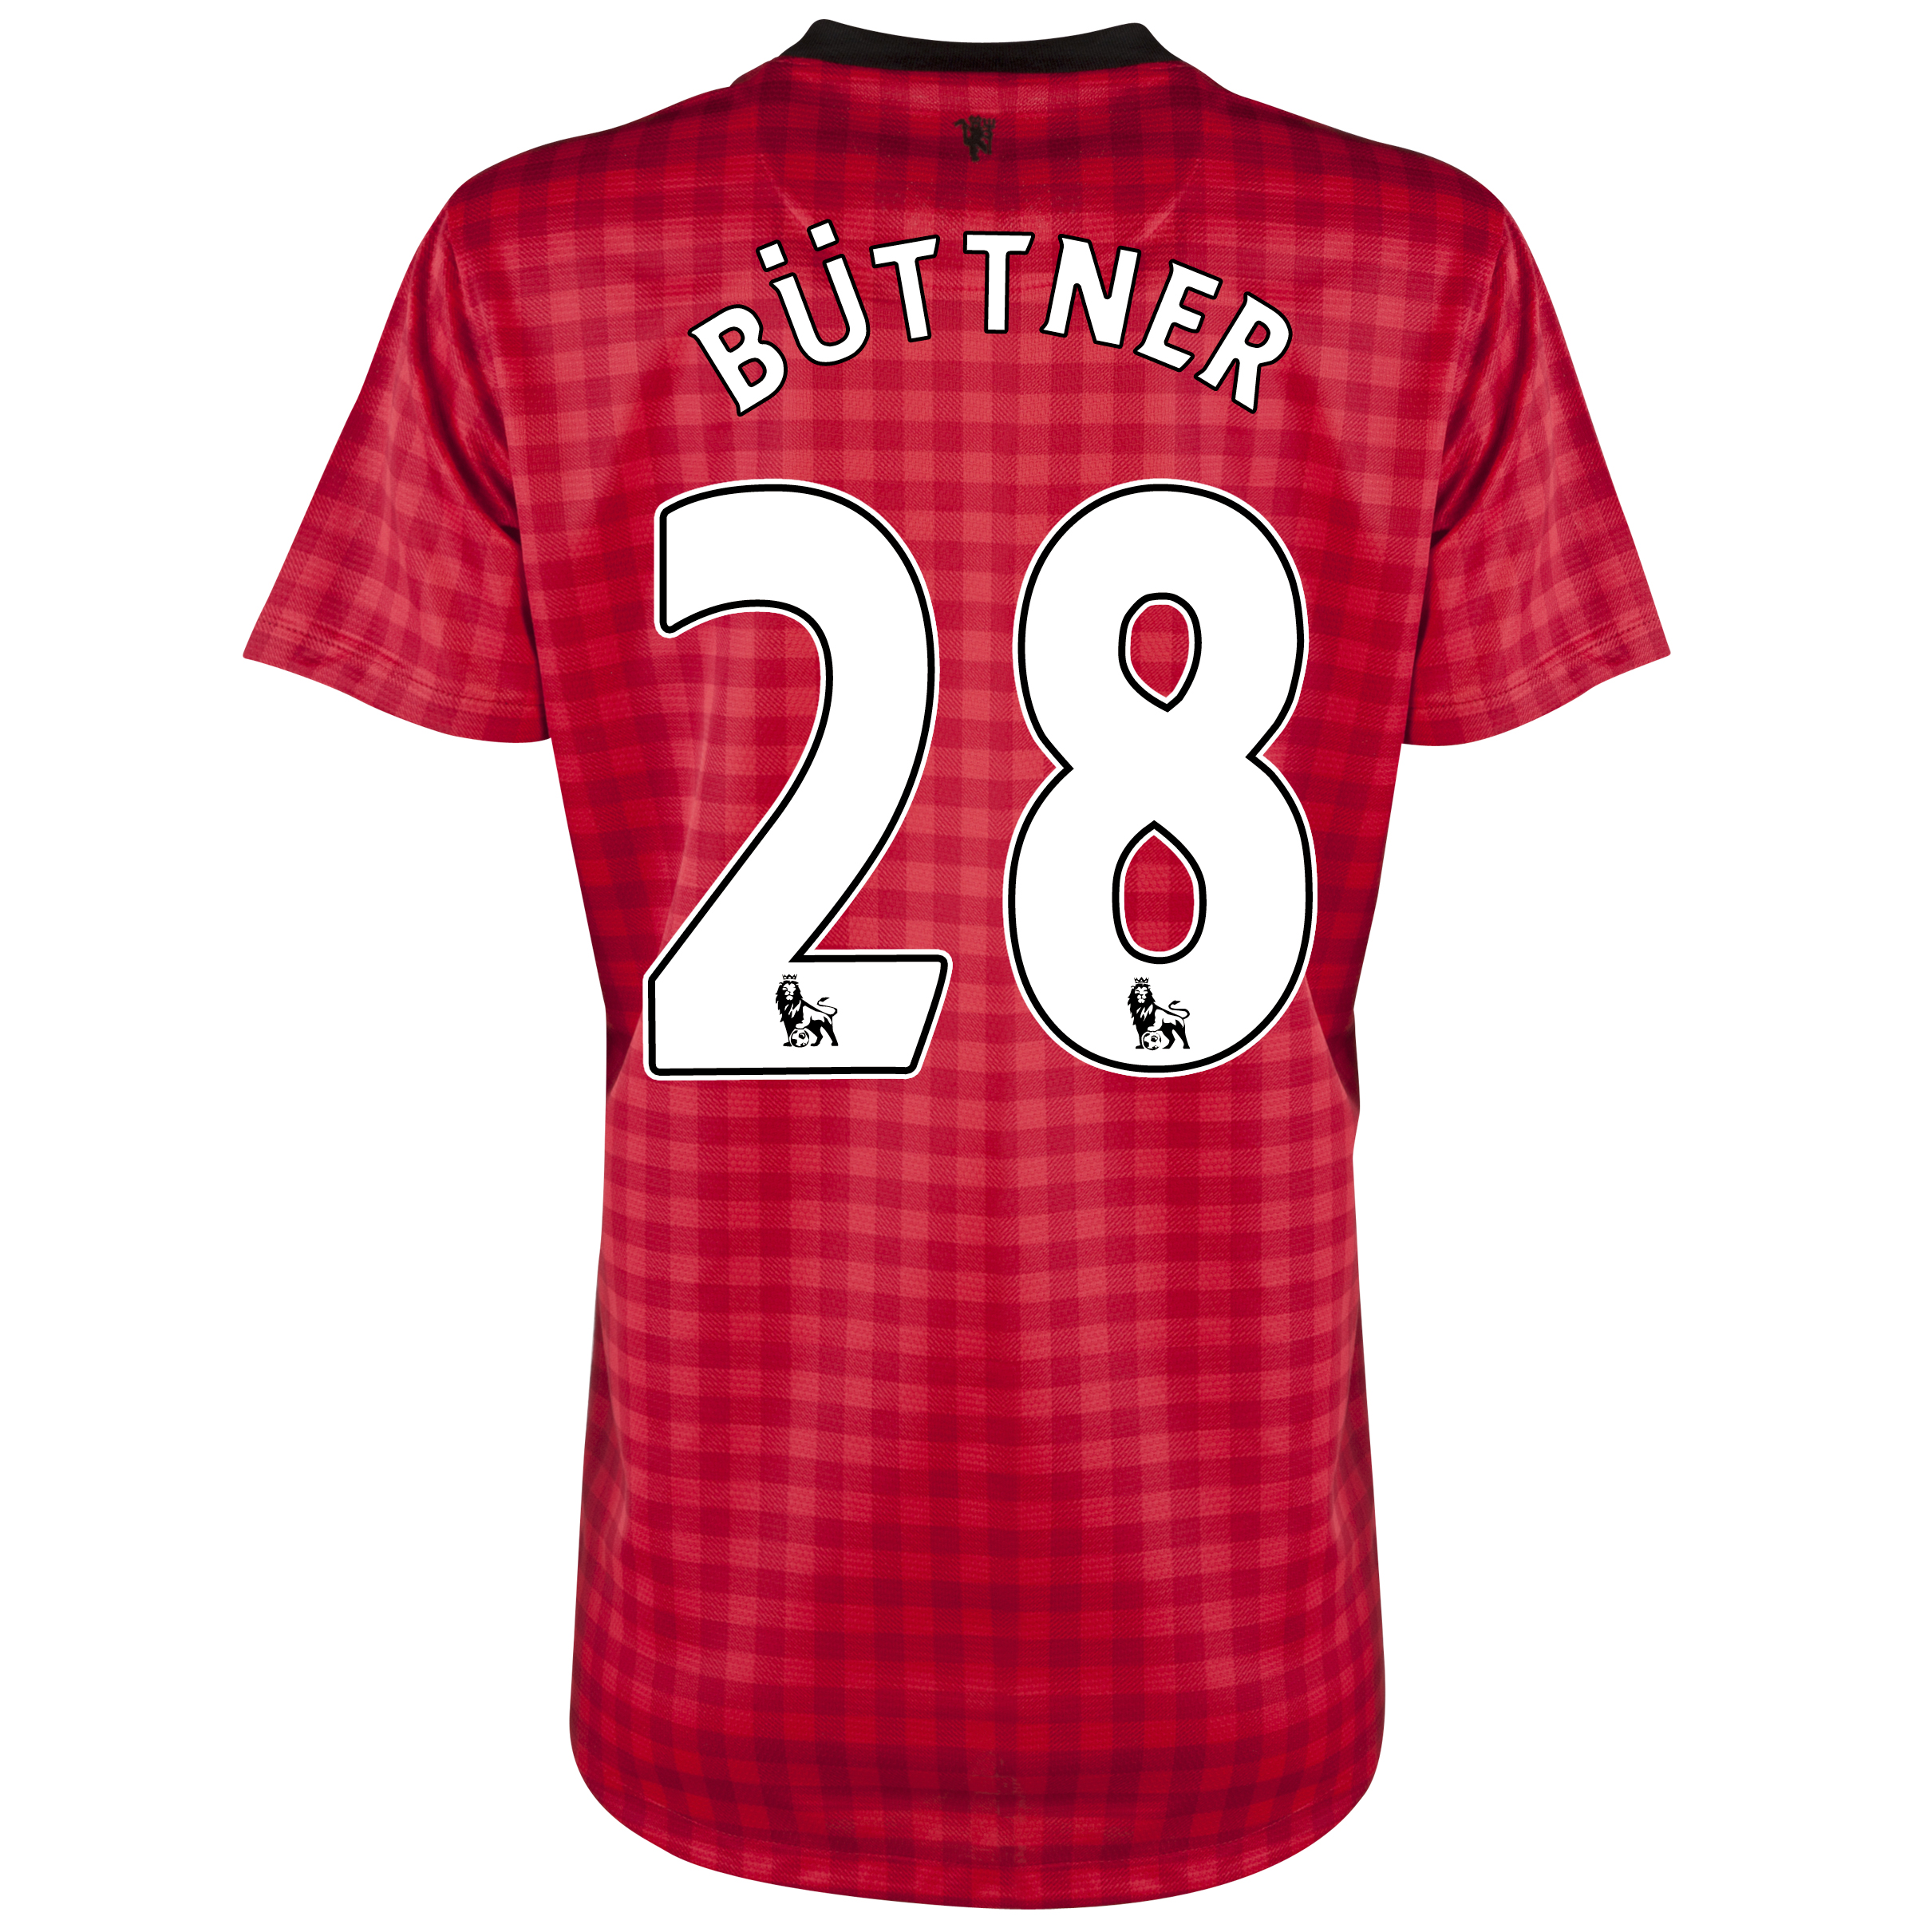 Manchester United Home Shirt 2012/13 - Womens with Büttner 28 printing